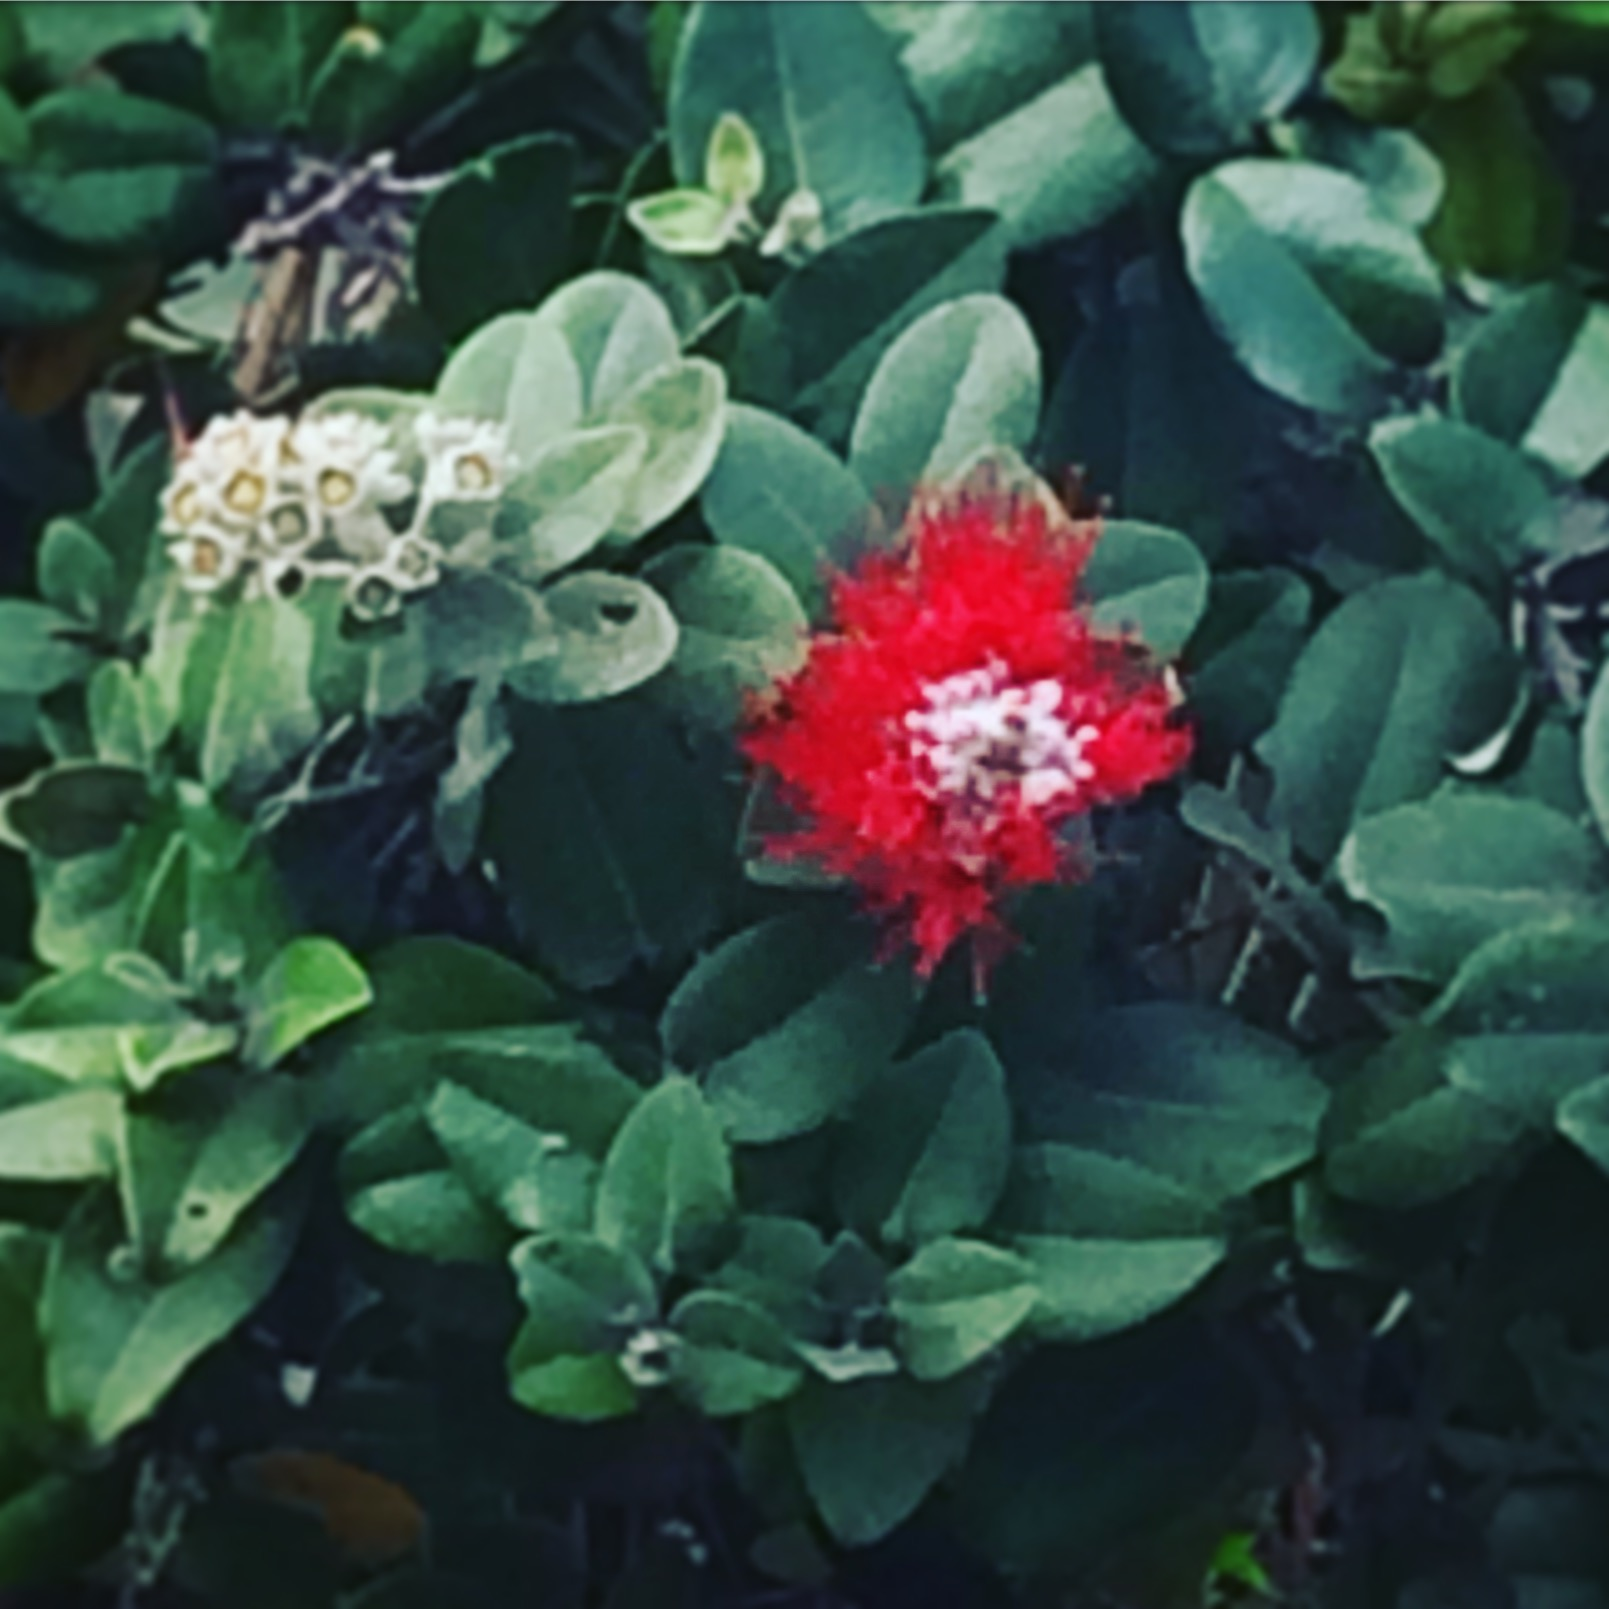 We can become like the Ohia, using our ancestry as a foundation for new growth, even after seemingly destructive forces. Aligns Root and Crown Chakras.